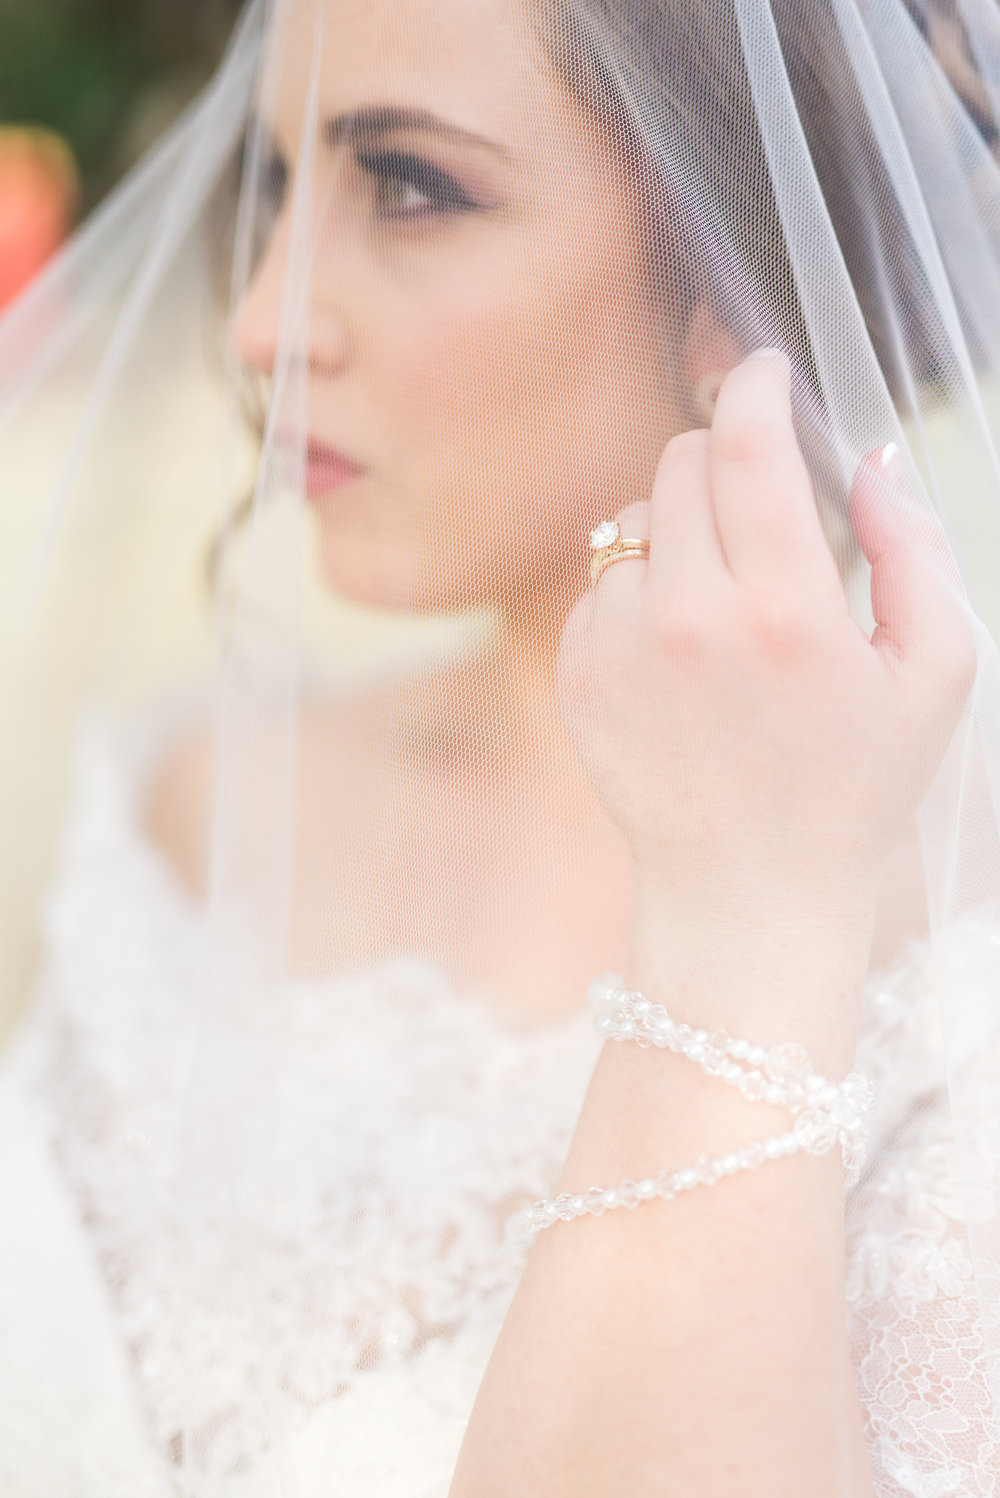 Gold Collection - $5750 - 8 hours photo + video coverageApproximately 500 edited, high-resolution imagesOur 3-4 minute Highlight Film with licensed musicWedding images + film/s supplied on our custom USBOnline gallery to share with friends and family